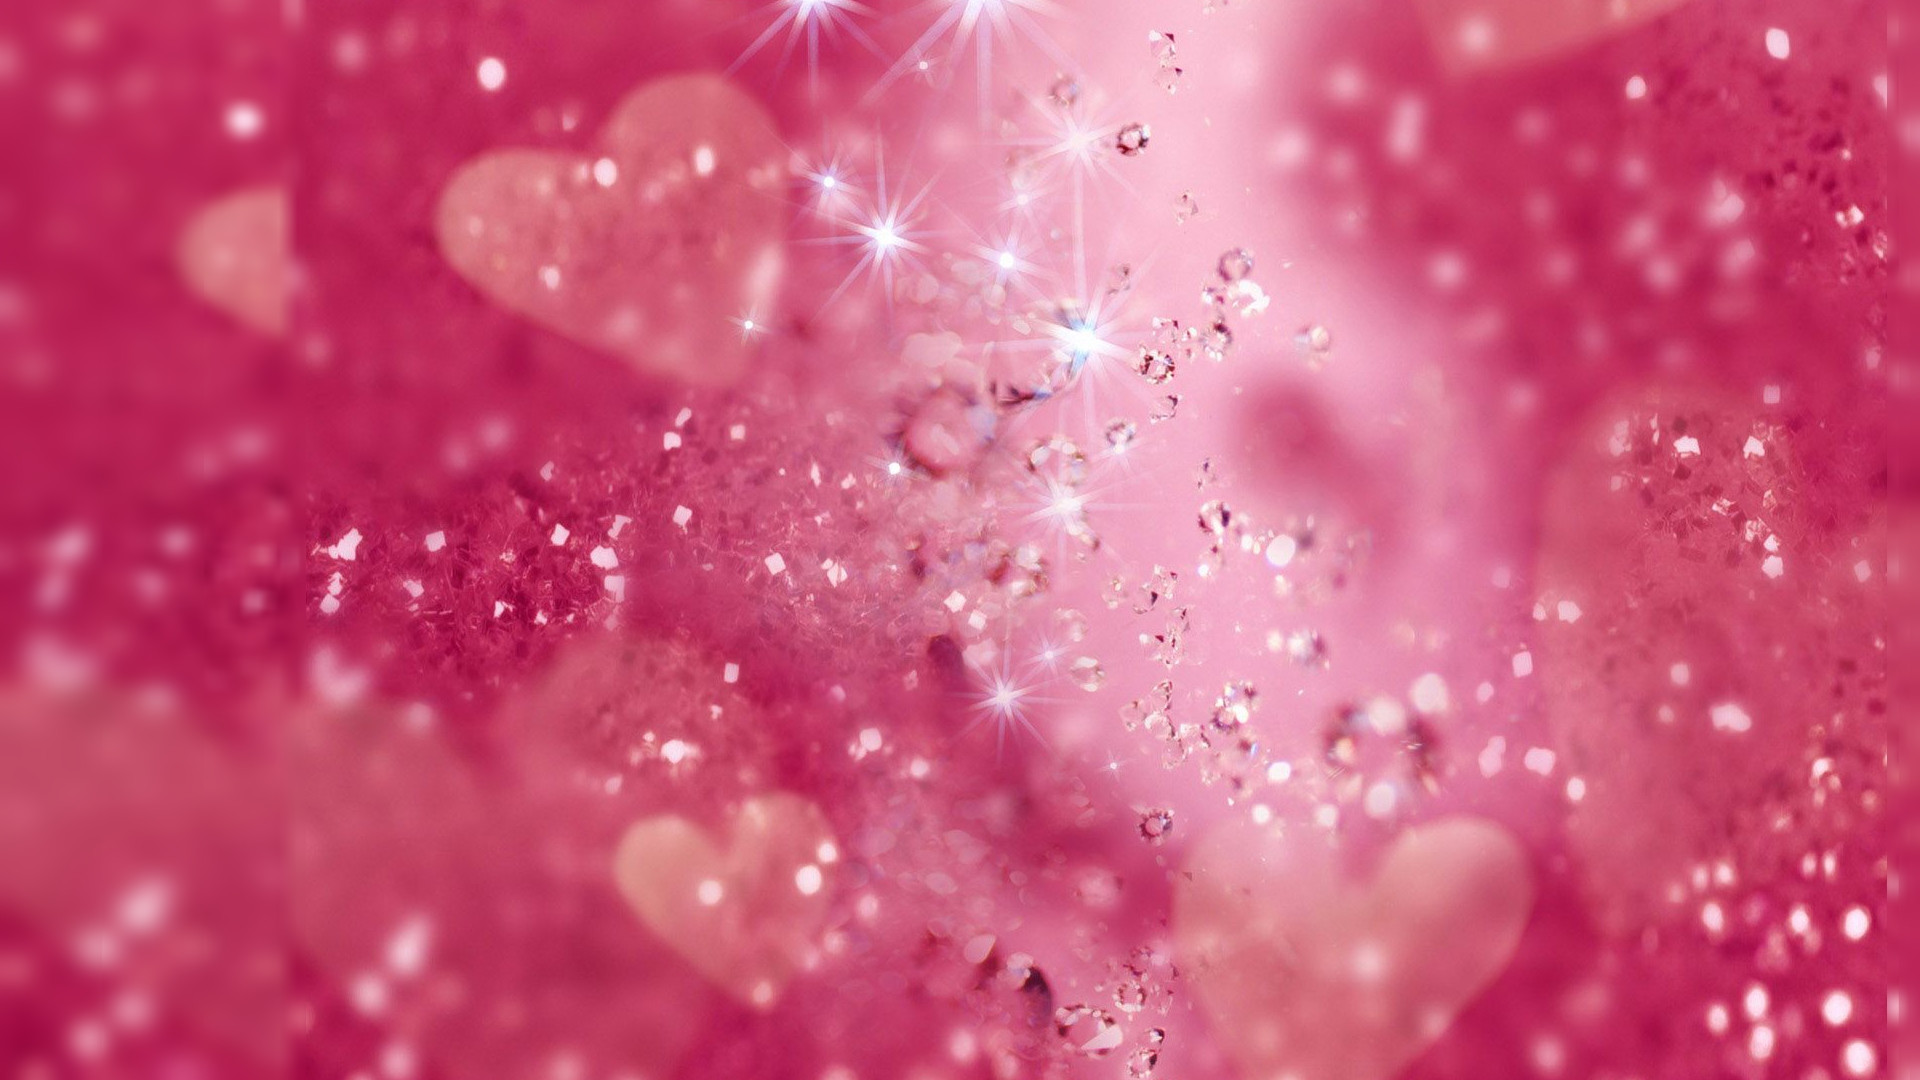 Wallpapers For Pretty Pink Backgrounds 1920x1080